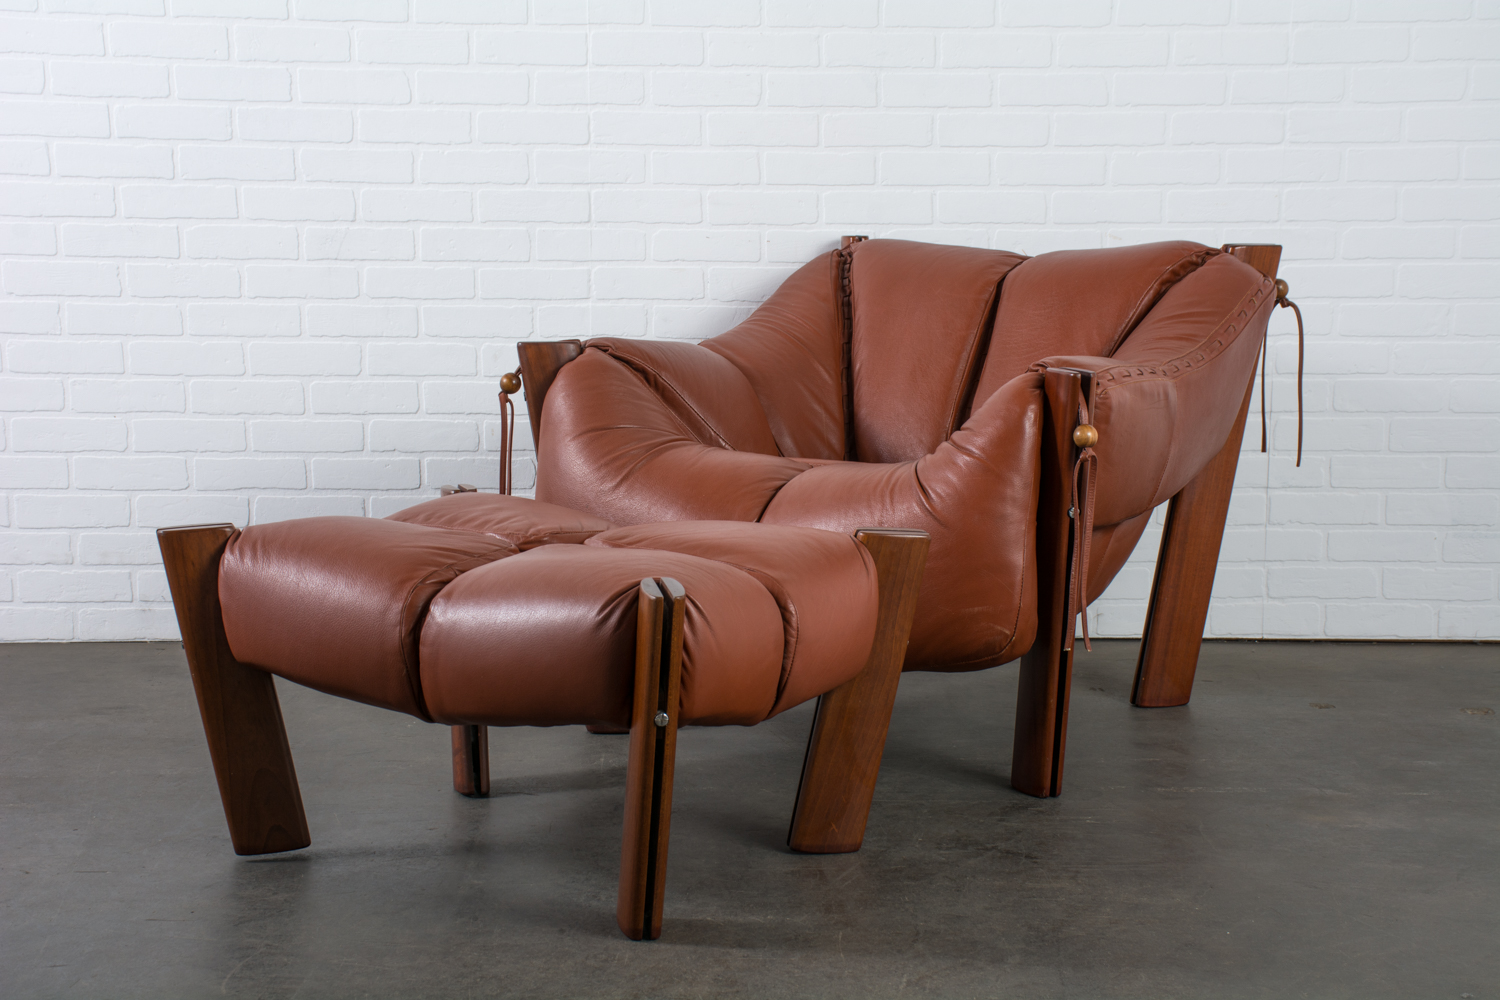 Modern Leather Chairs Brazilian Modern Leather Lounge Chair And Ottoman By Percival Lafer